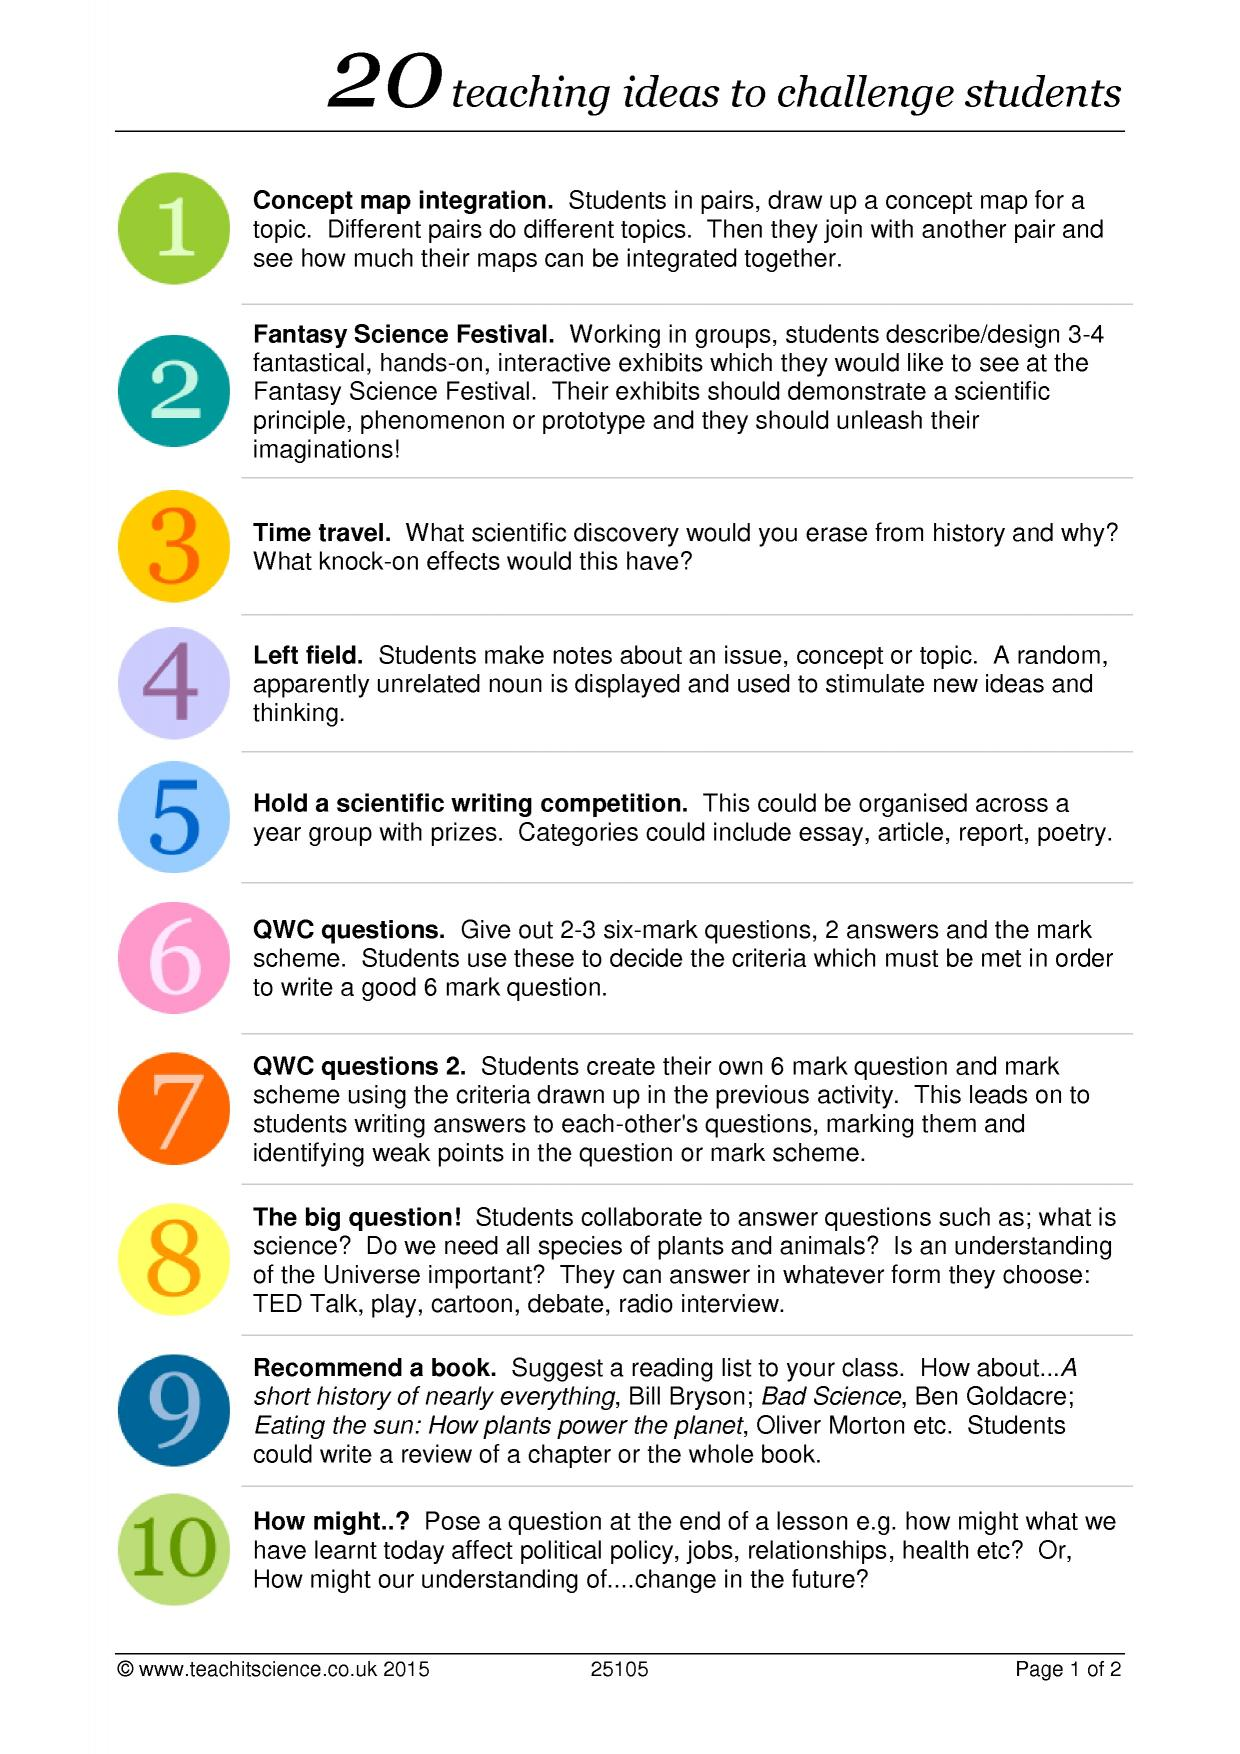 20 teaching ideas to challenge students in Science